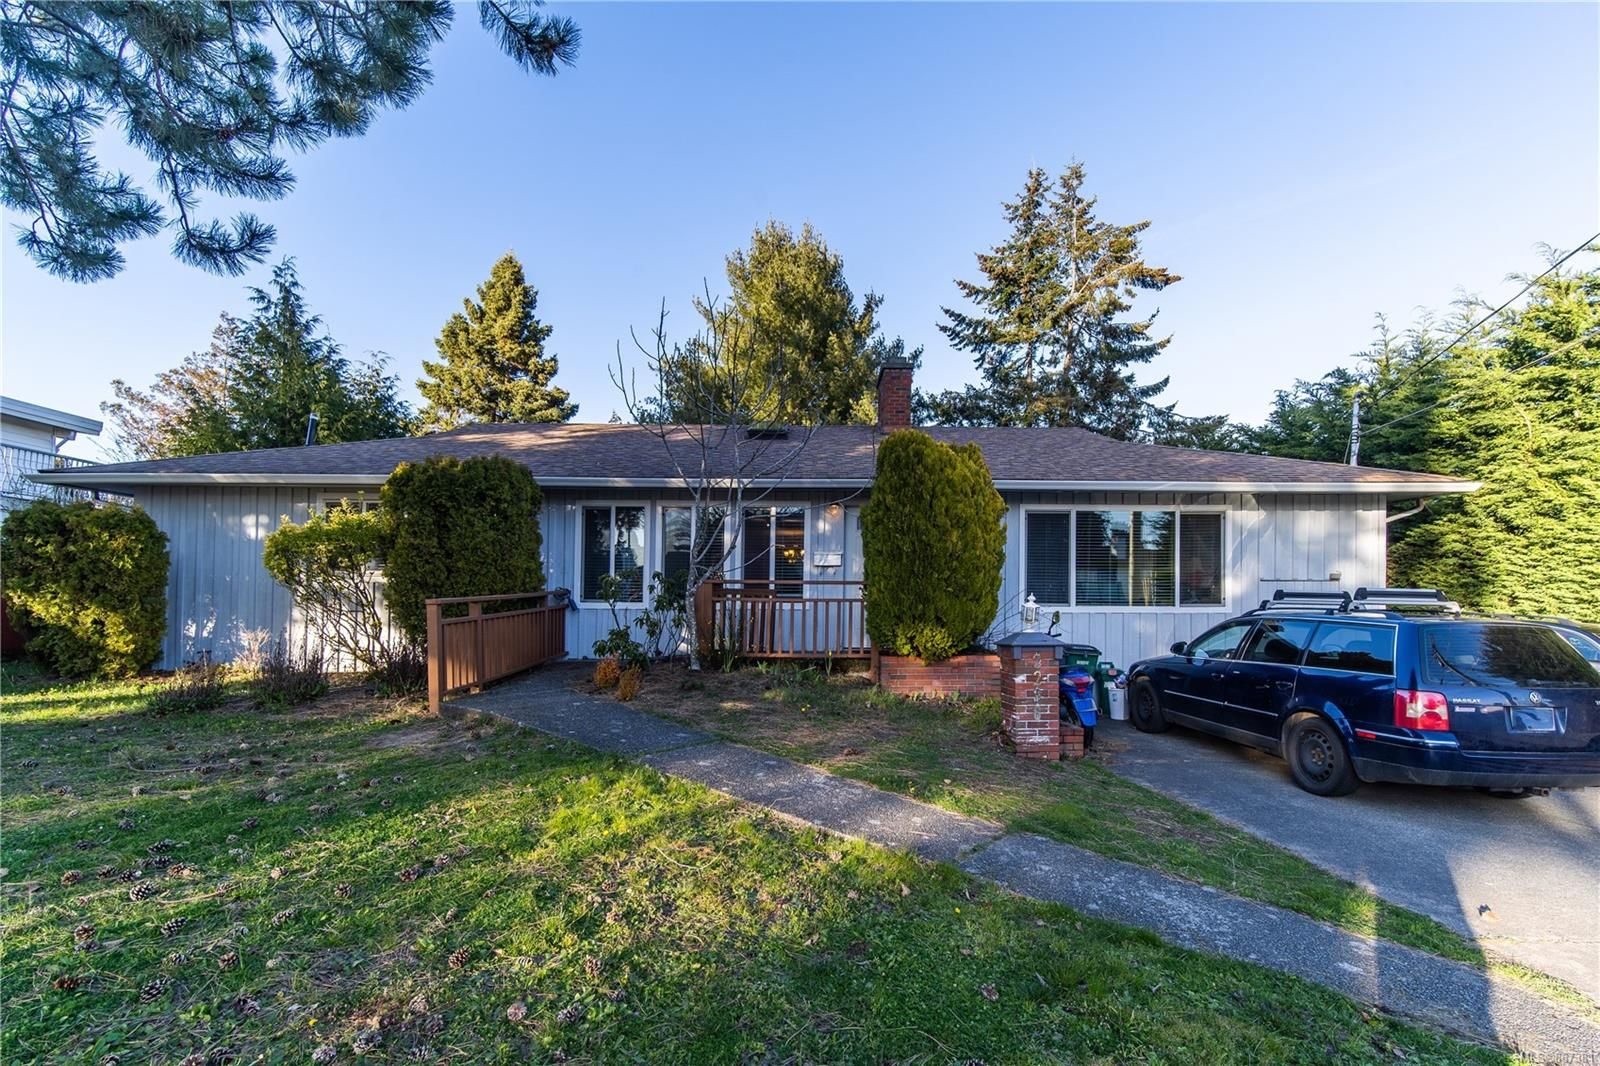 Main Photo: 2296 Edgelow St in : SE Gordon Head House for sale (Saanich East)  : MLS®# 867381